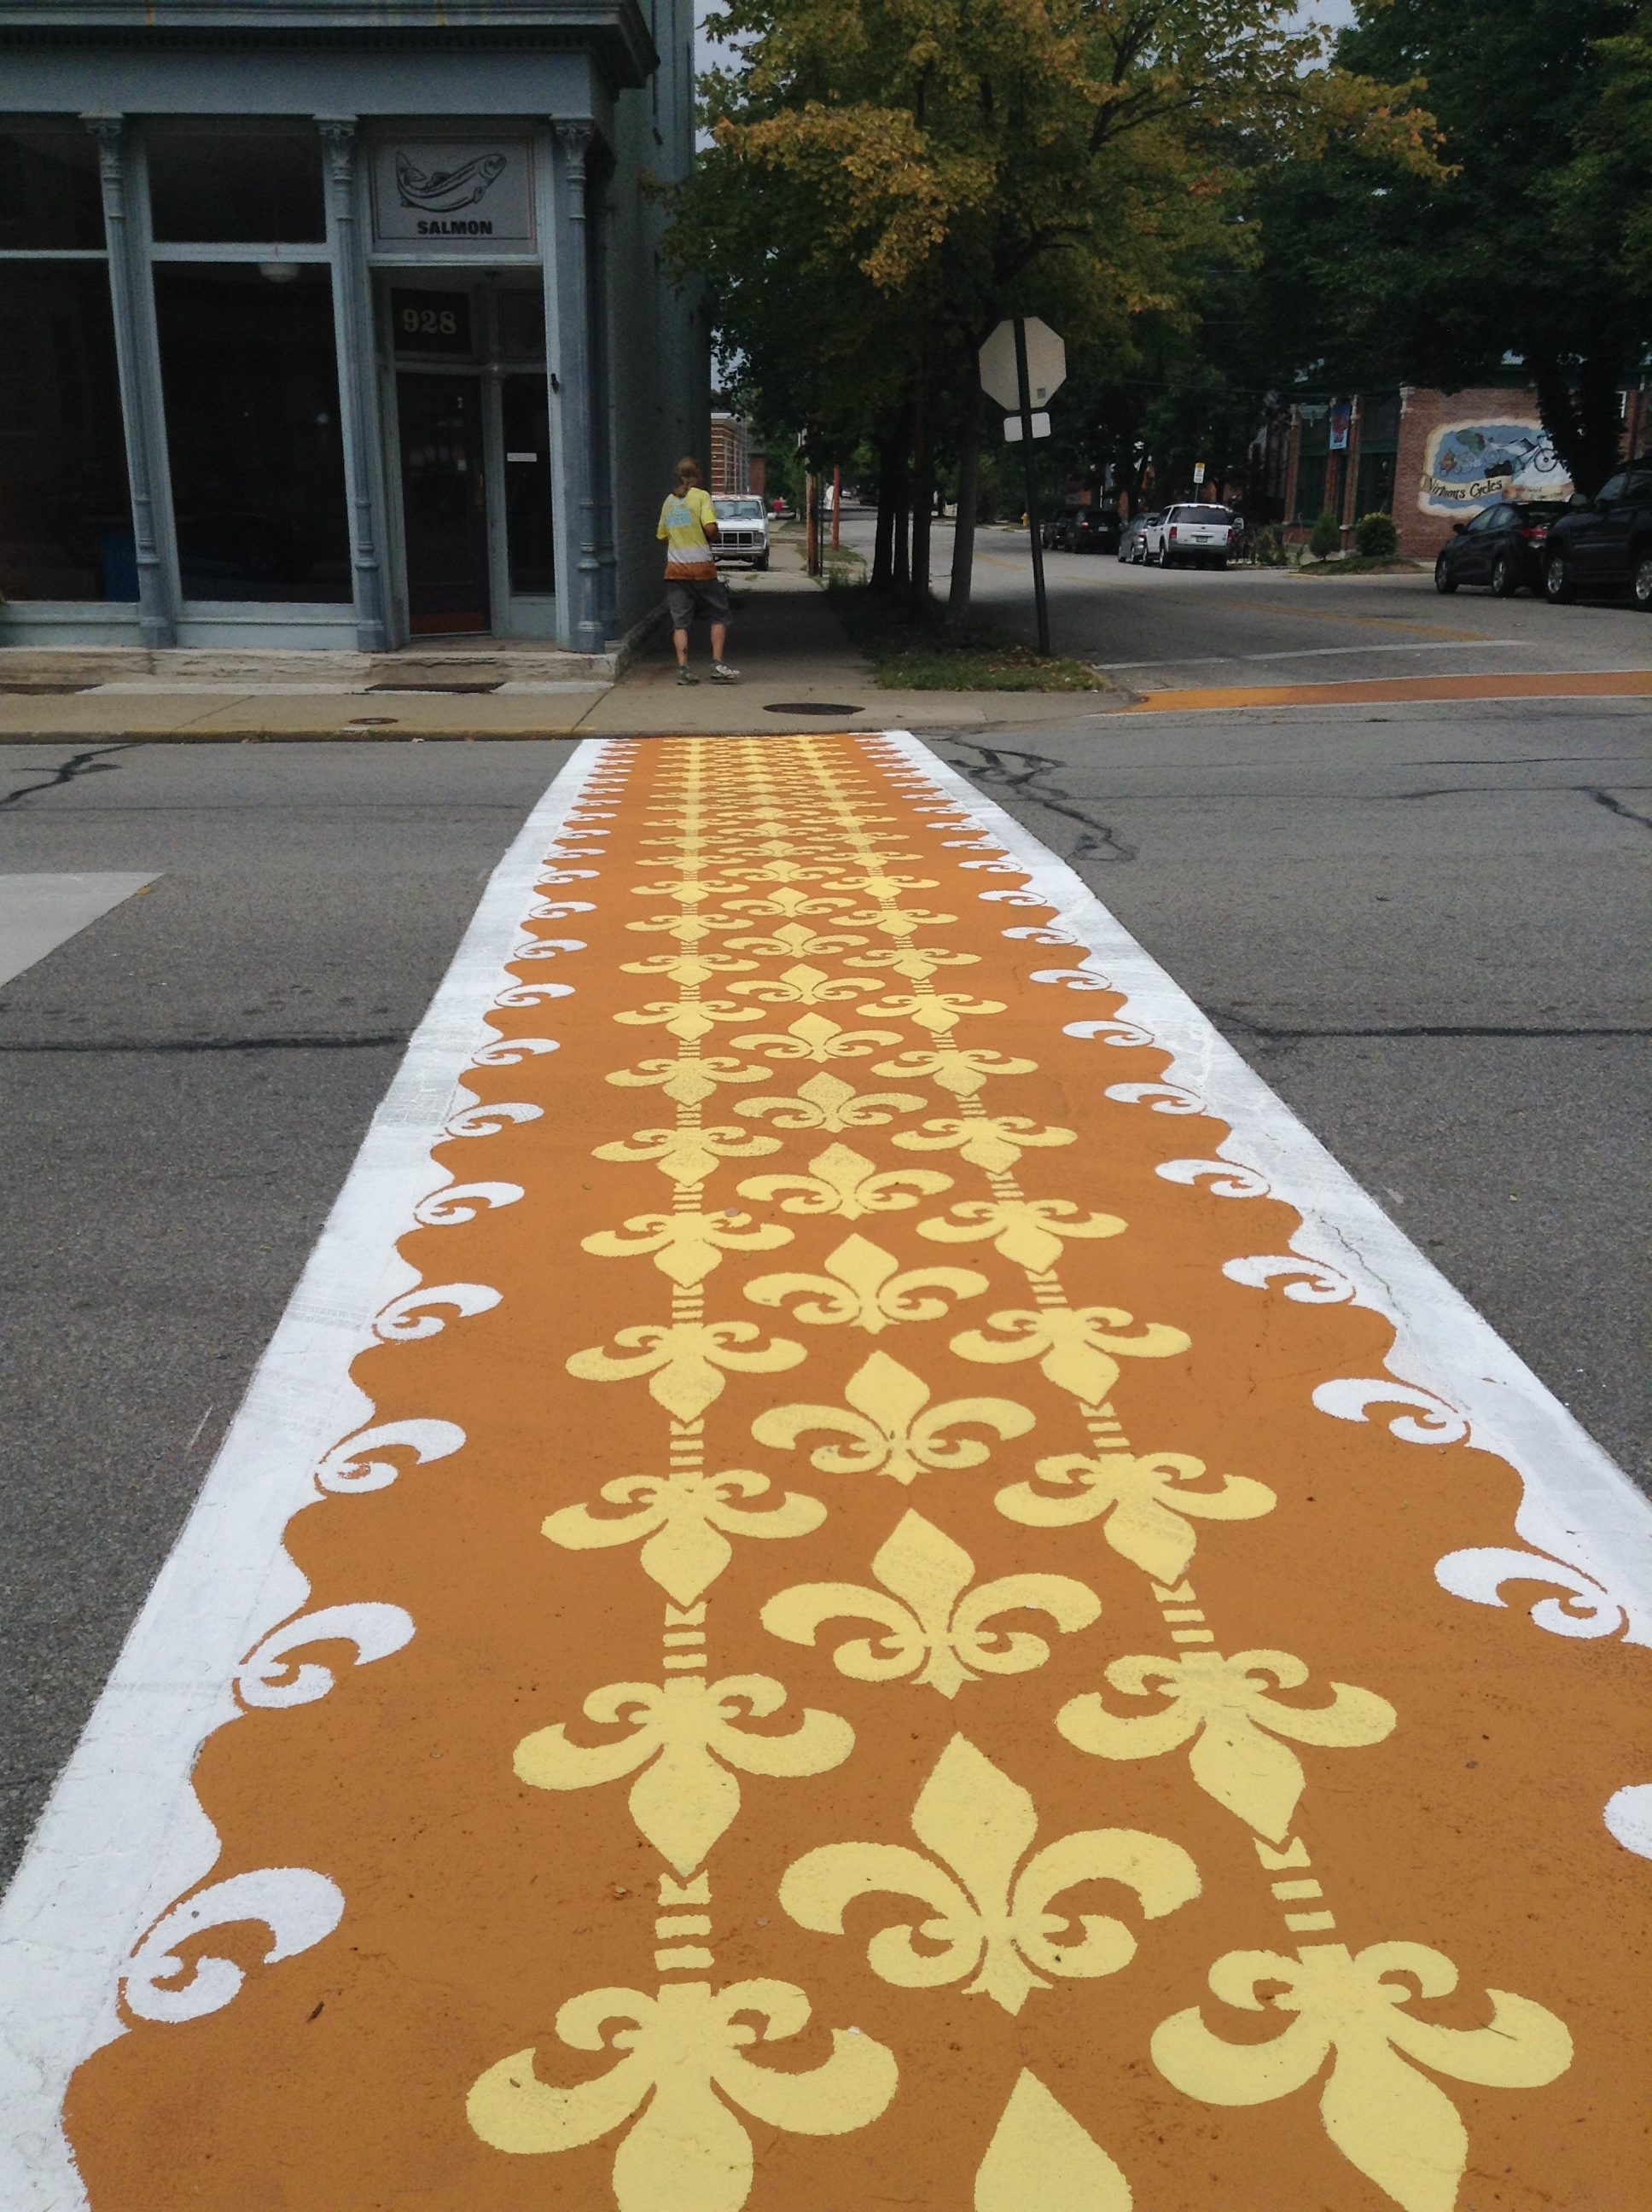 Orange, yellow and white crosswalk pattern made of fleur de lis.